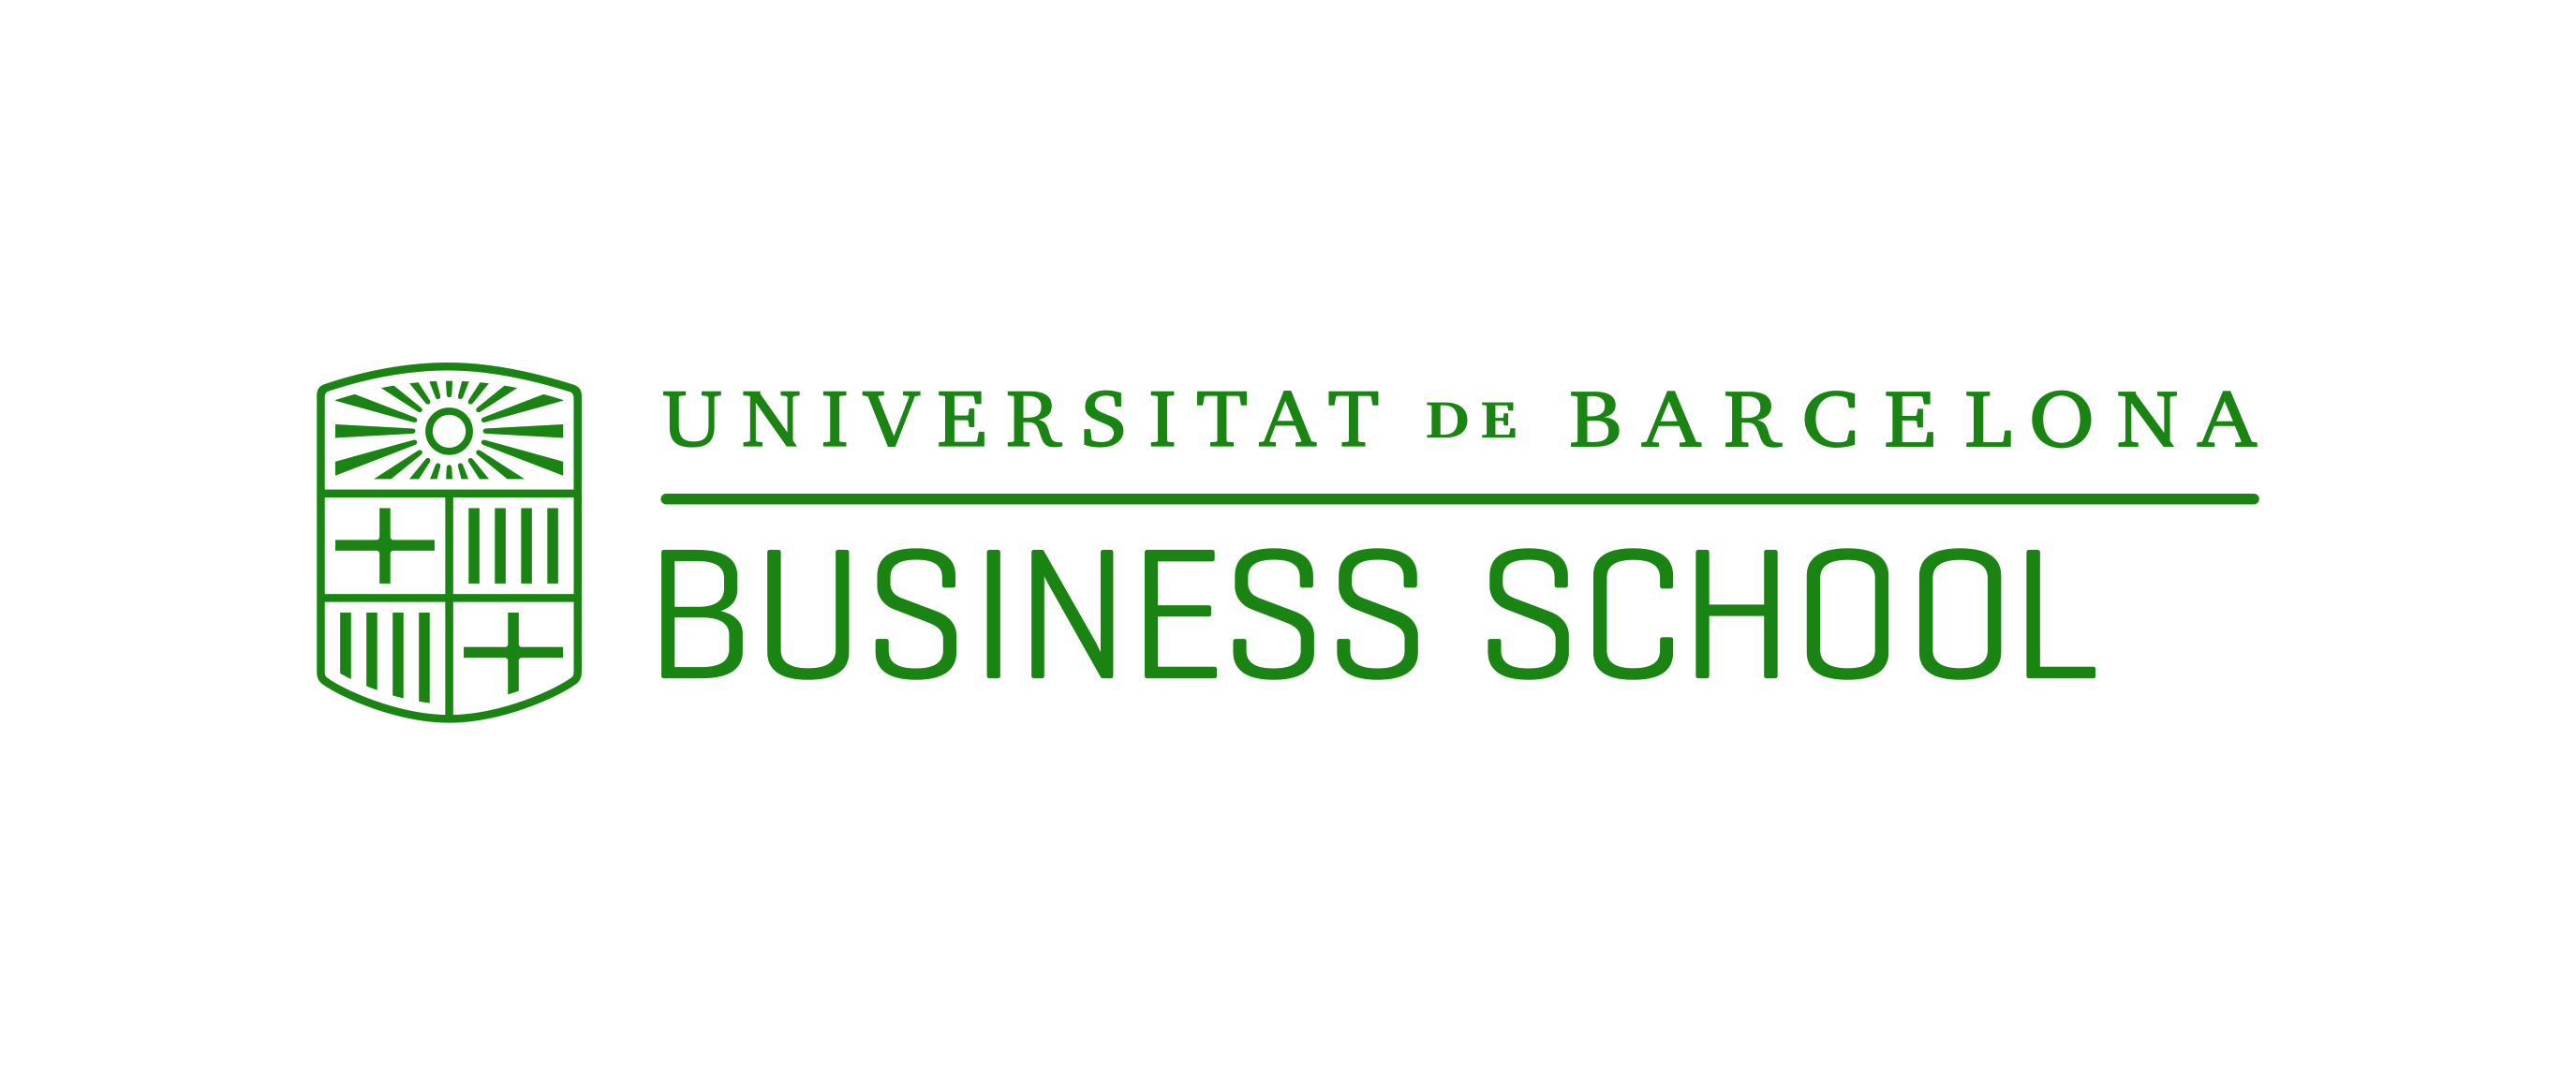 UB Business School